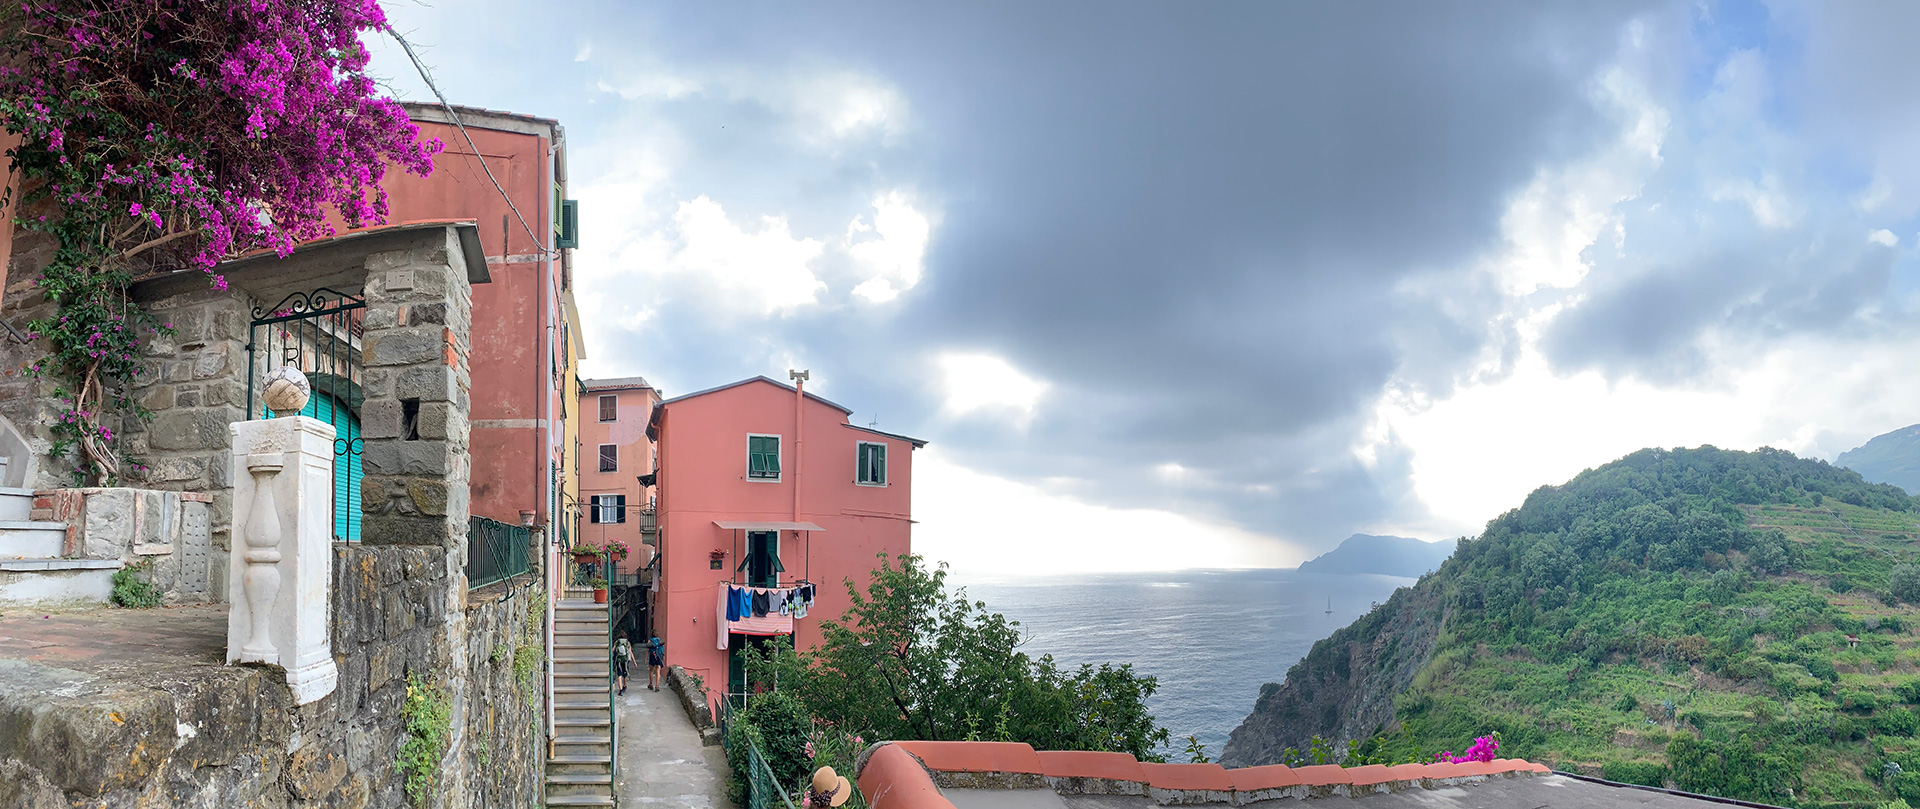 Colourful homes against the quaint blue sky in Cinque Terre | Cinque Terre| Italy| STIR